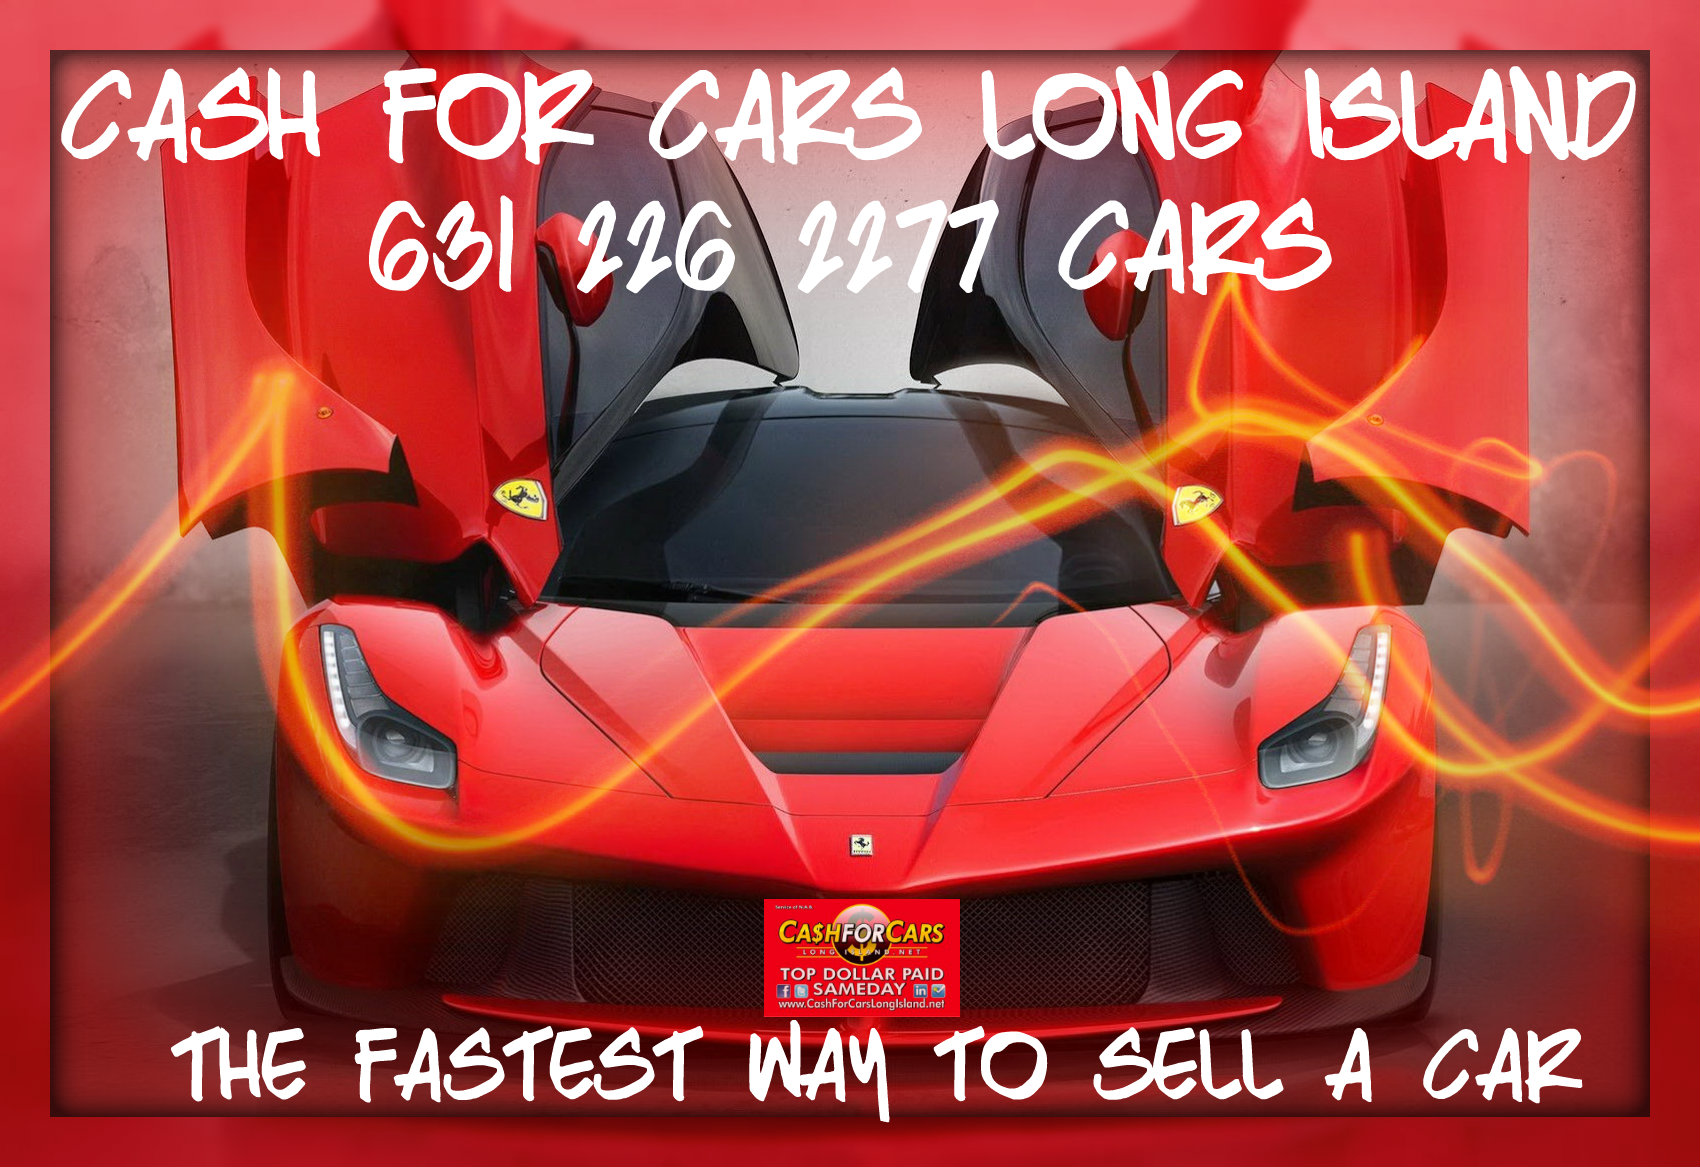 Junk My Car For Cash Long Island - Cash For Cars | Sell My Car ...